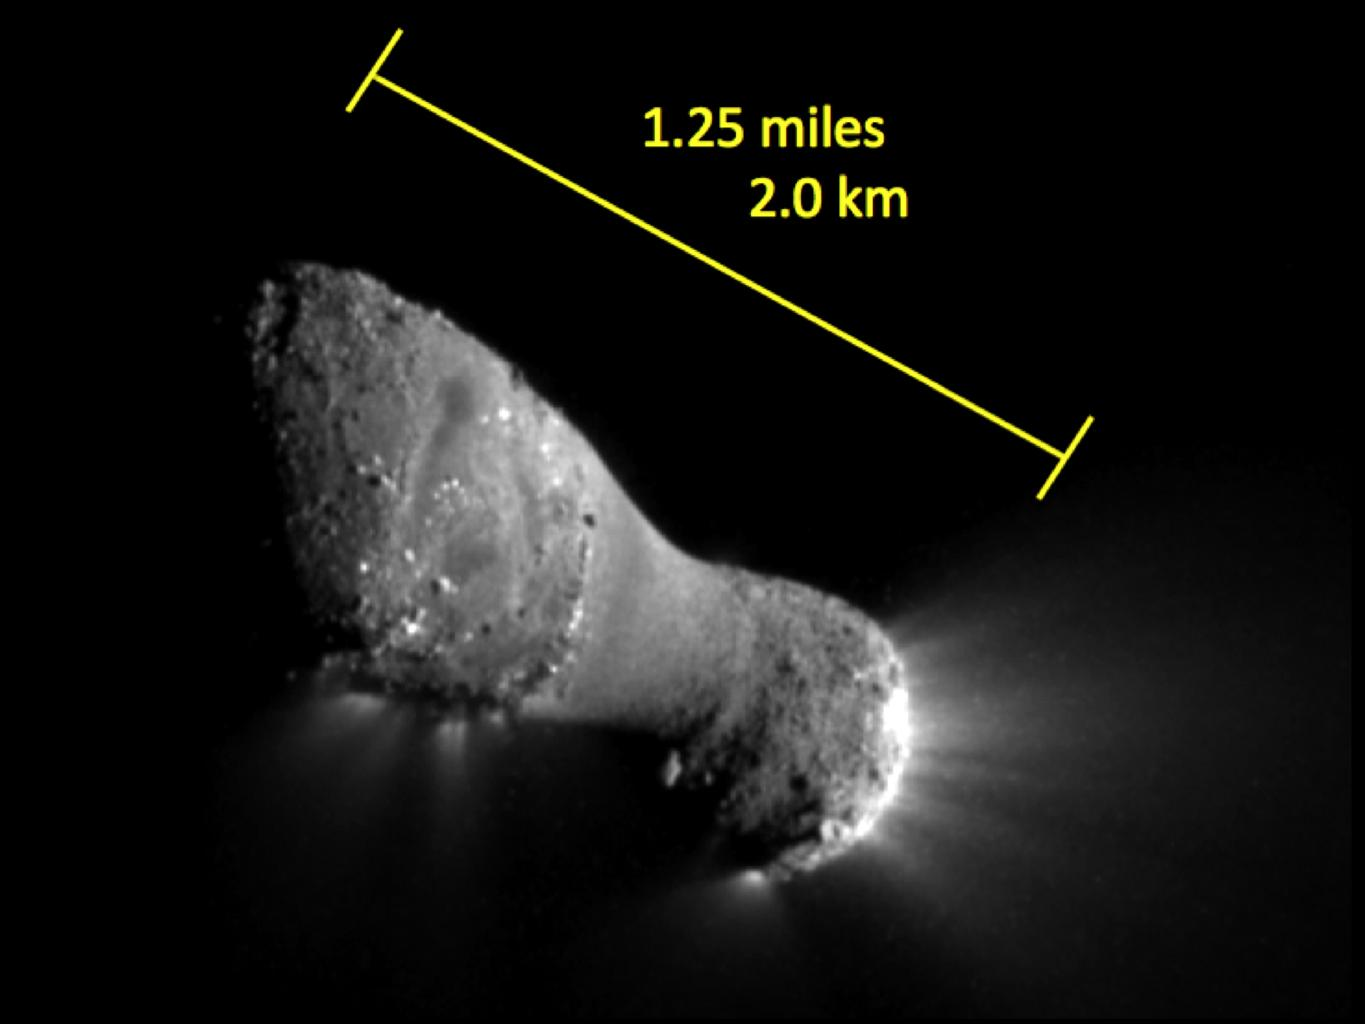 This image, one of the closest taken of comet Hartley 2 by NASA's EPOXI mission, shows many features across the comet's surface. The length of the comet is equal to the distance between the Capitol building and the Washington Monument in Washington.